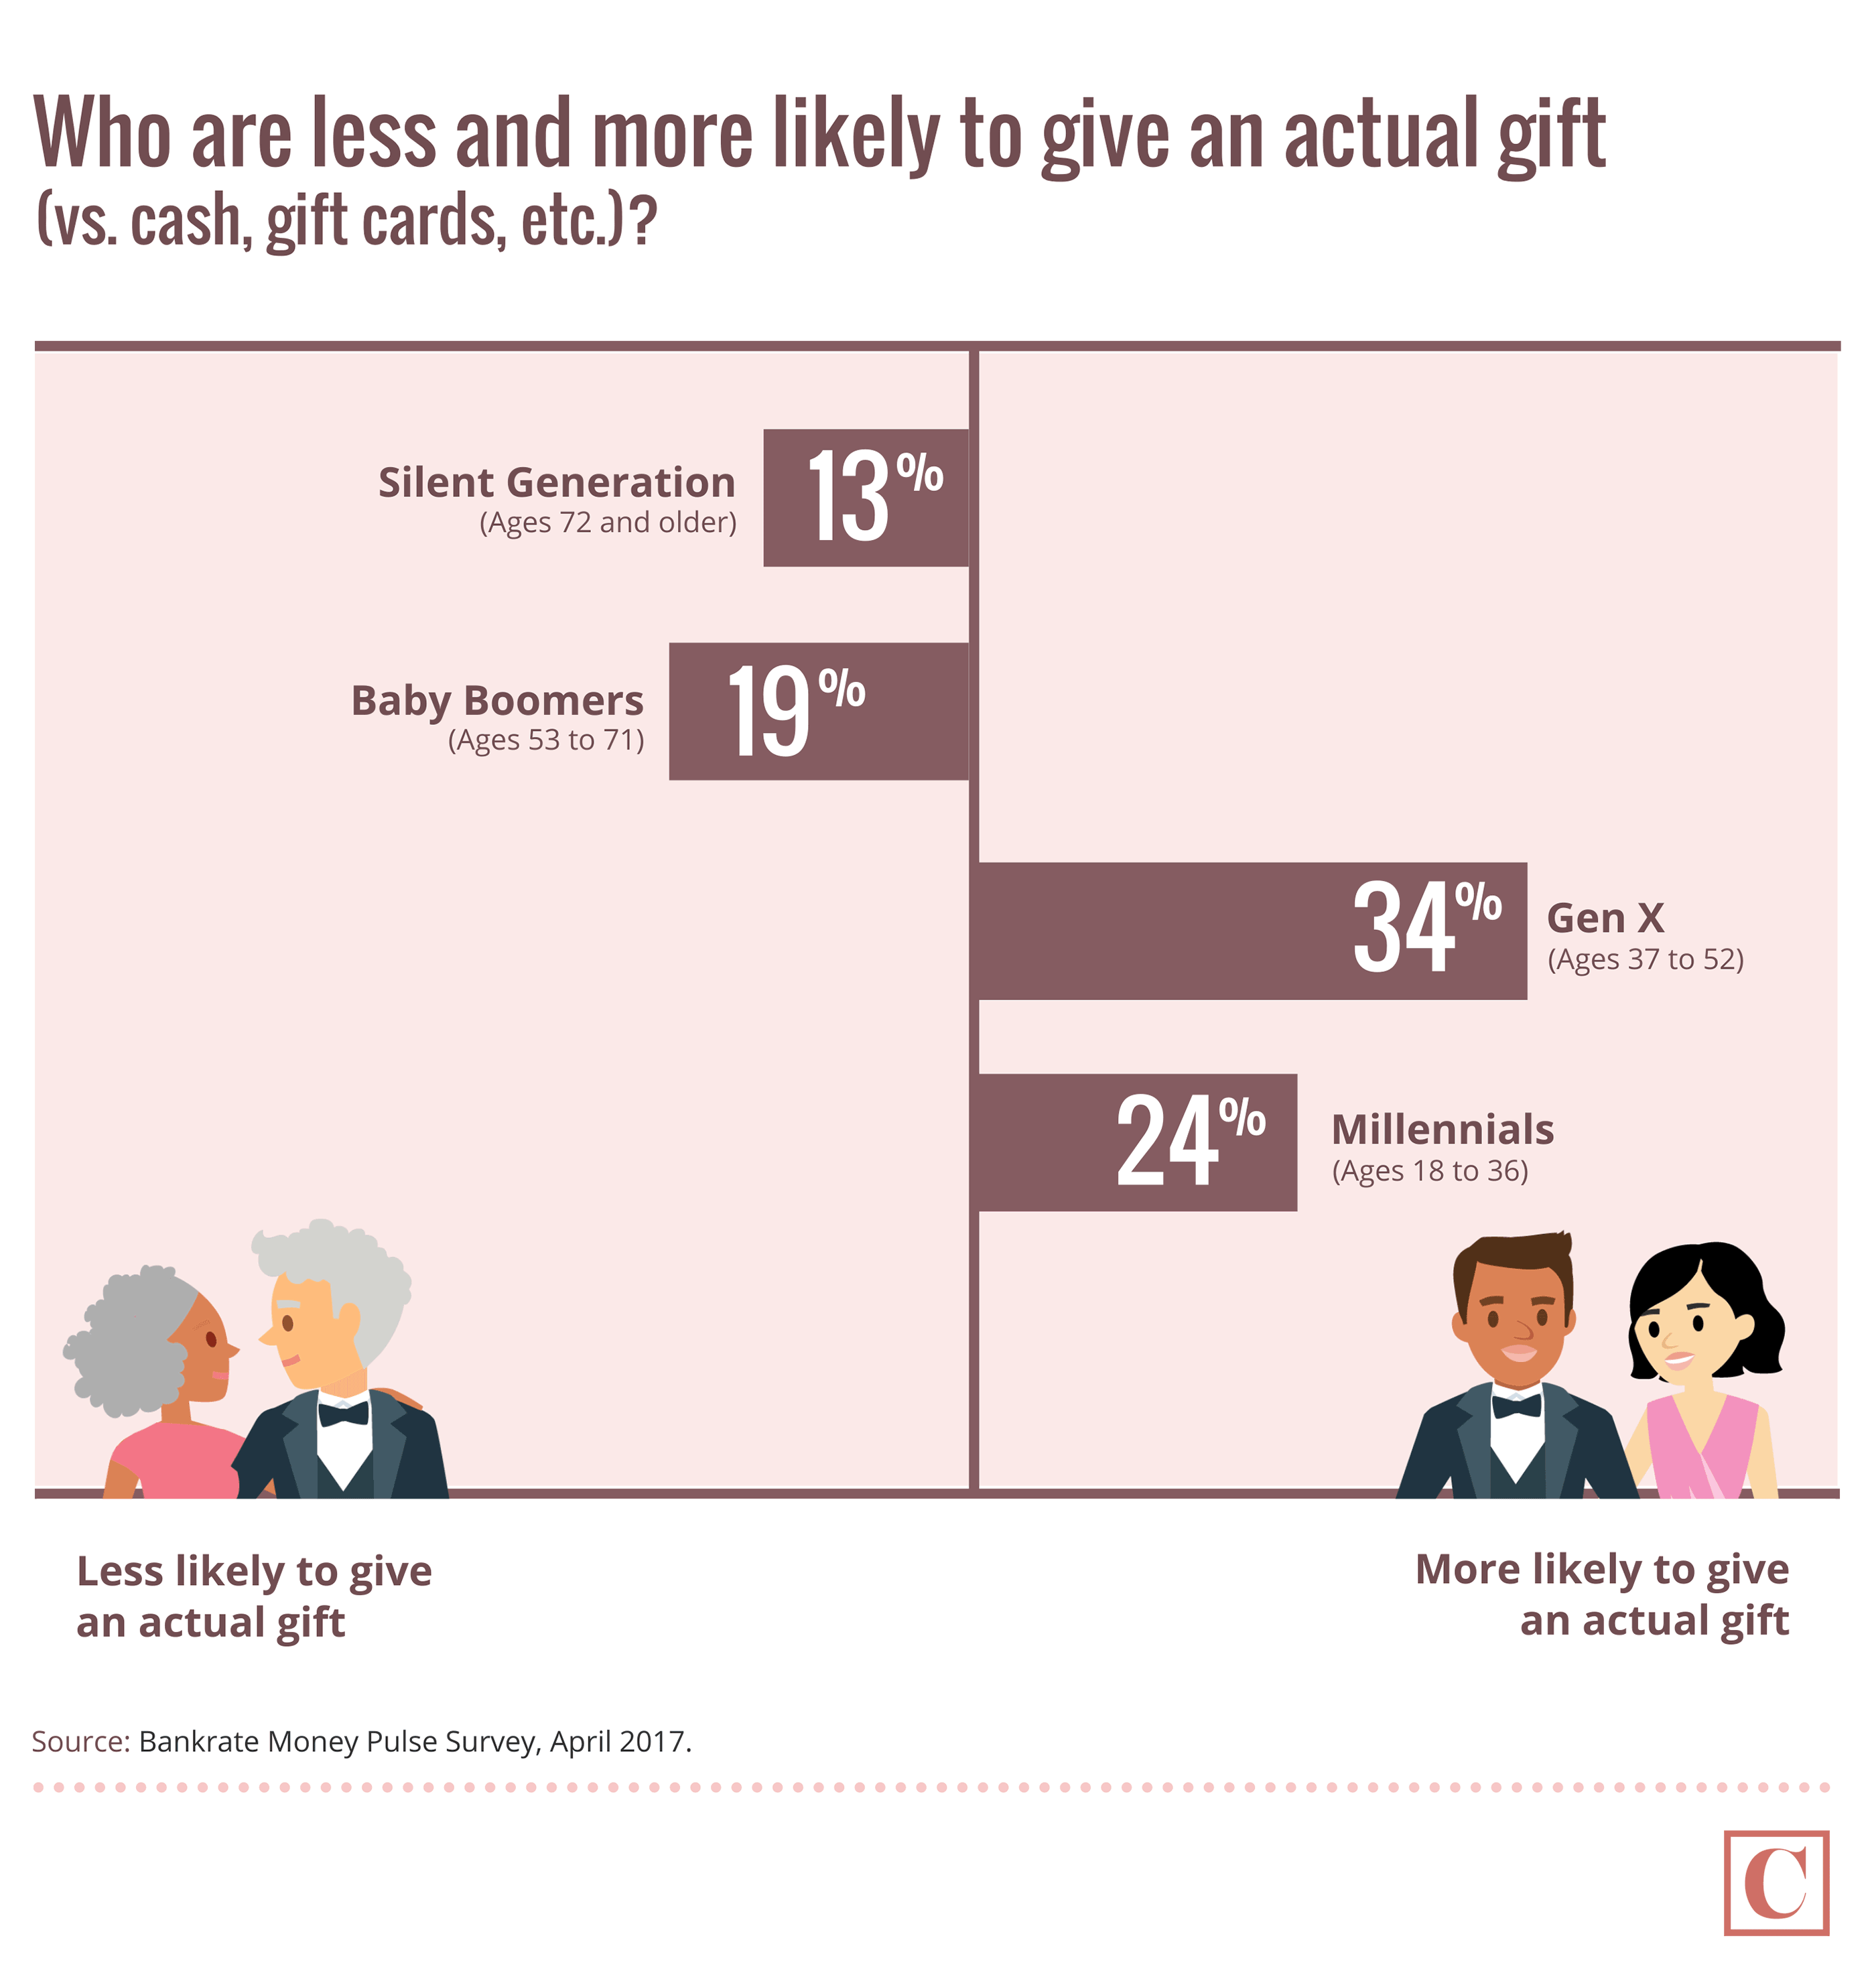 Who are less and more likely to give an actual wedding gift?